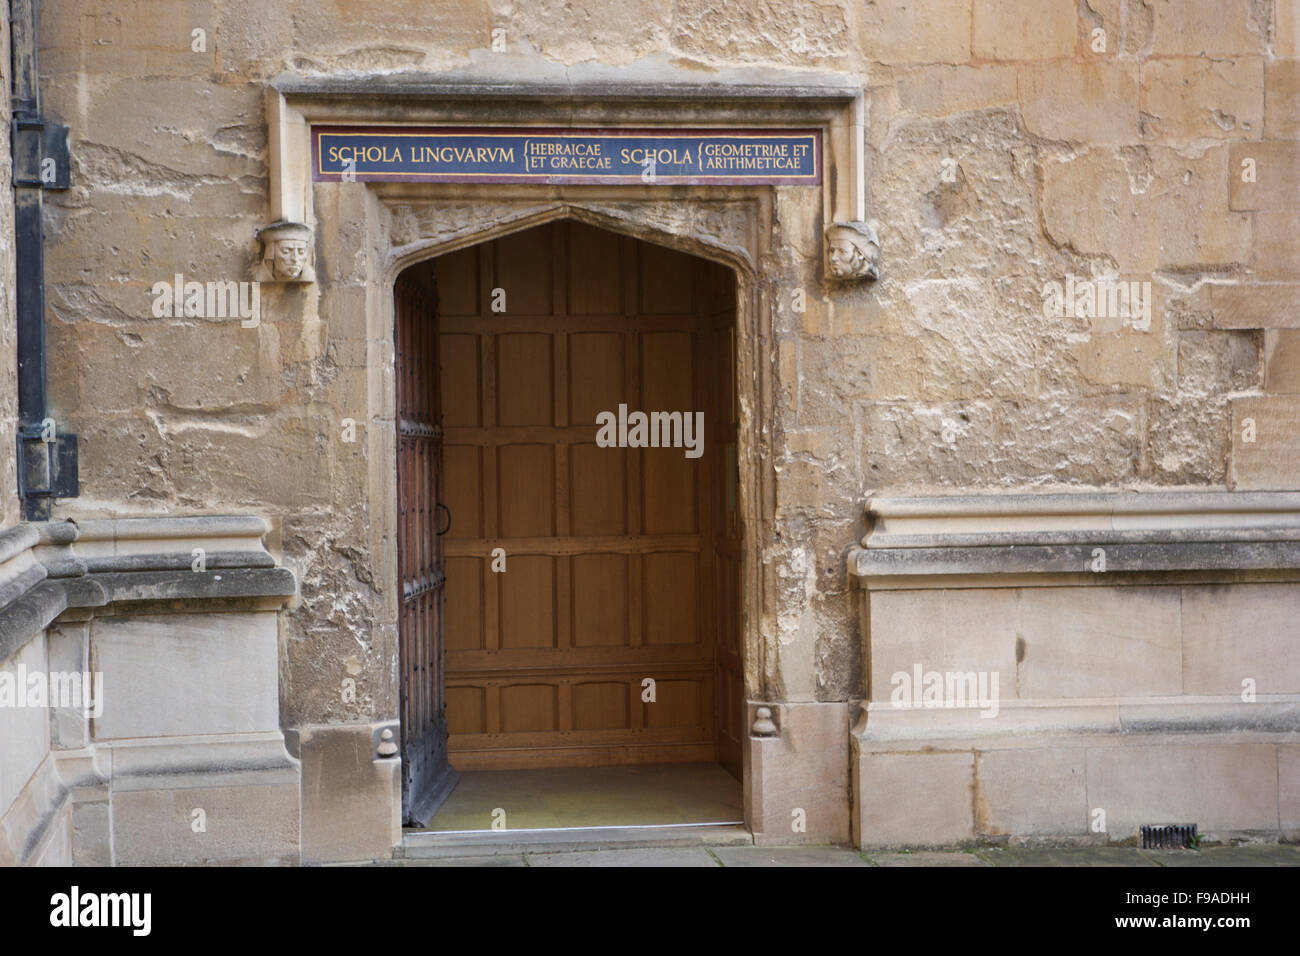 Schola linguarum: language school of Oxford University at the Bodleian Library - Stock Image